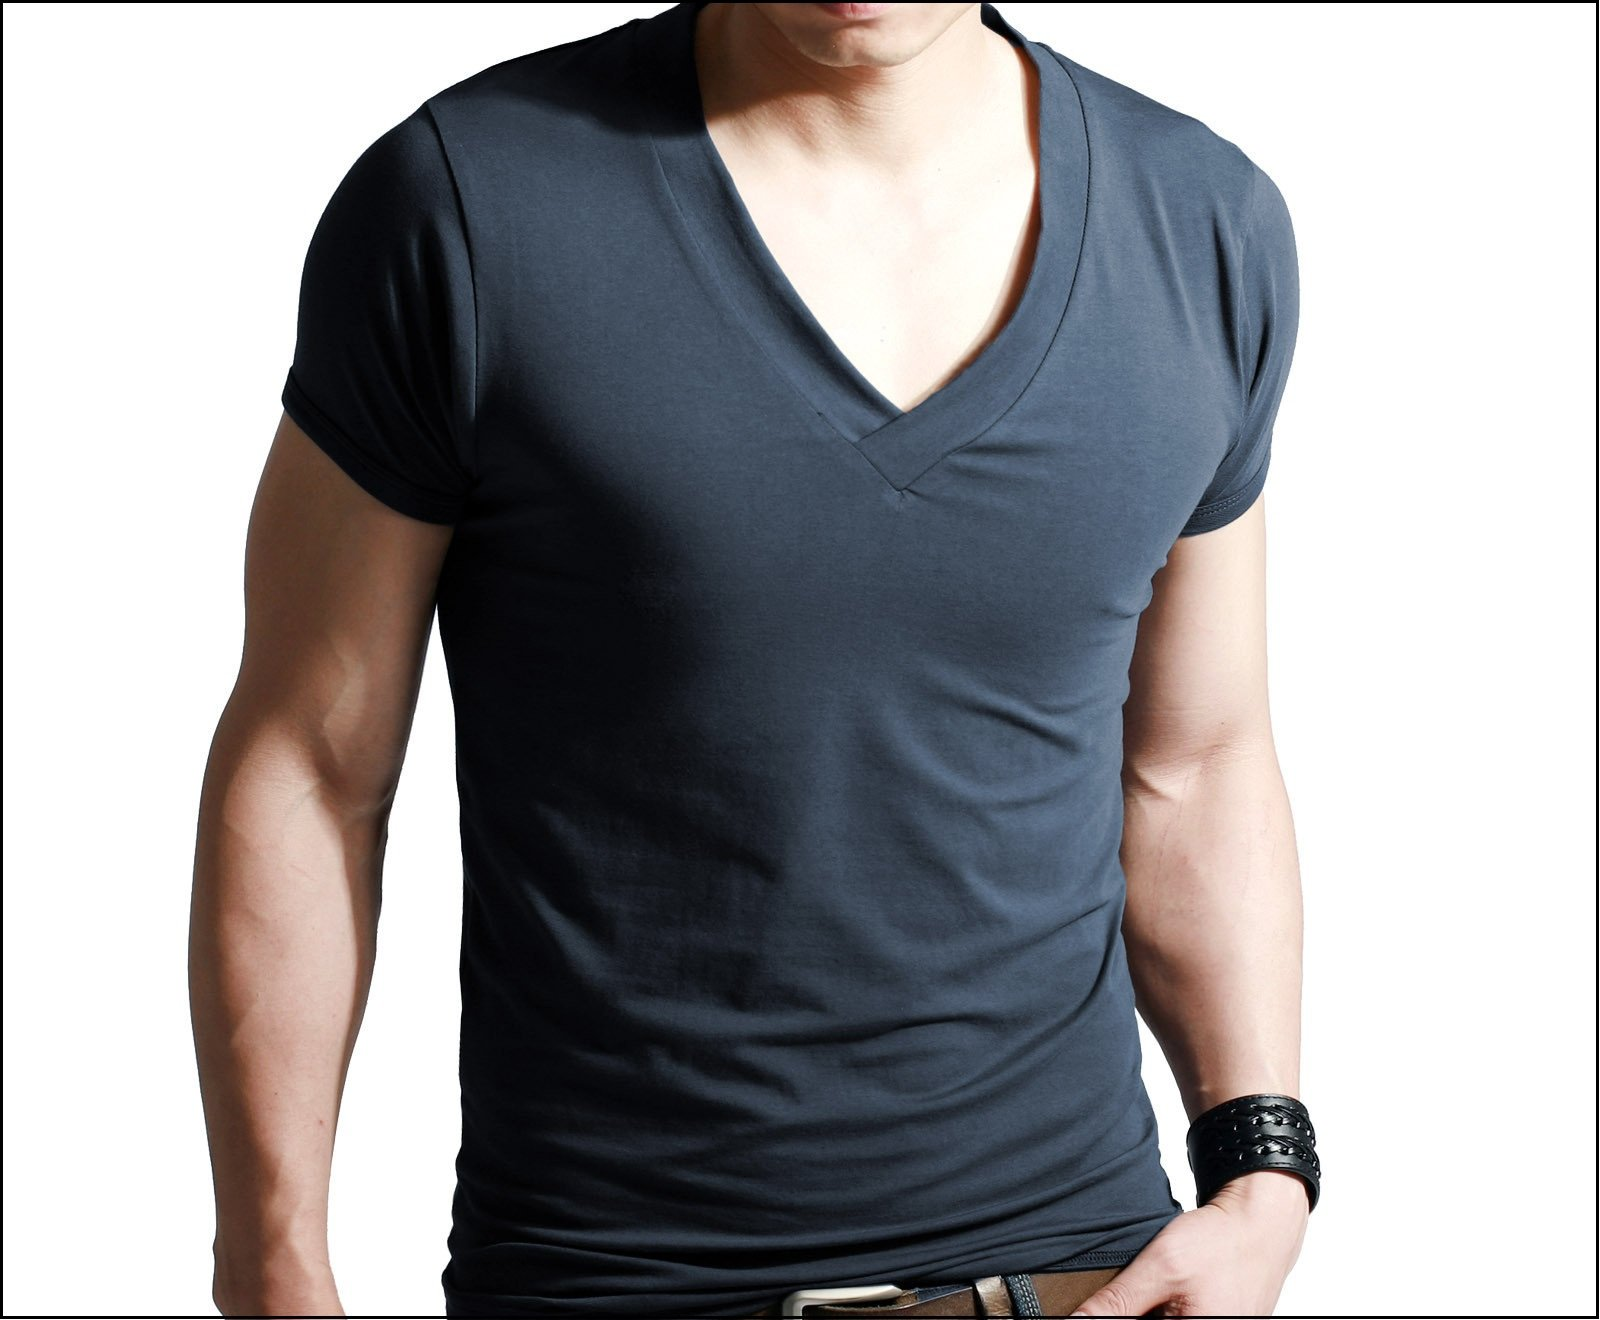 finest selection 6fb24 f0c52 I'm A Guy Who Prefers Wearing V-Neck T-Shirts & I Don't Get ...